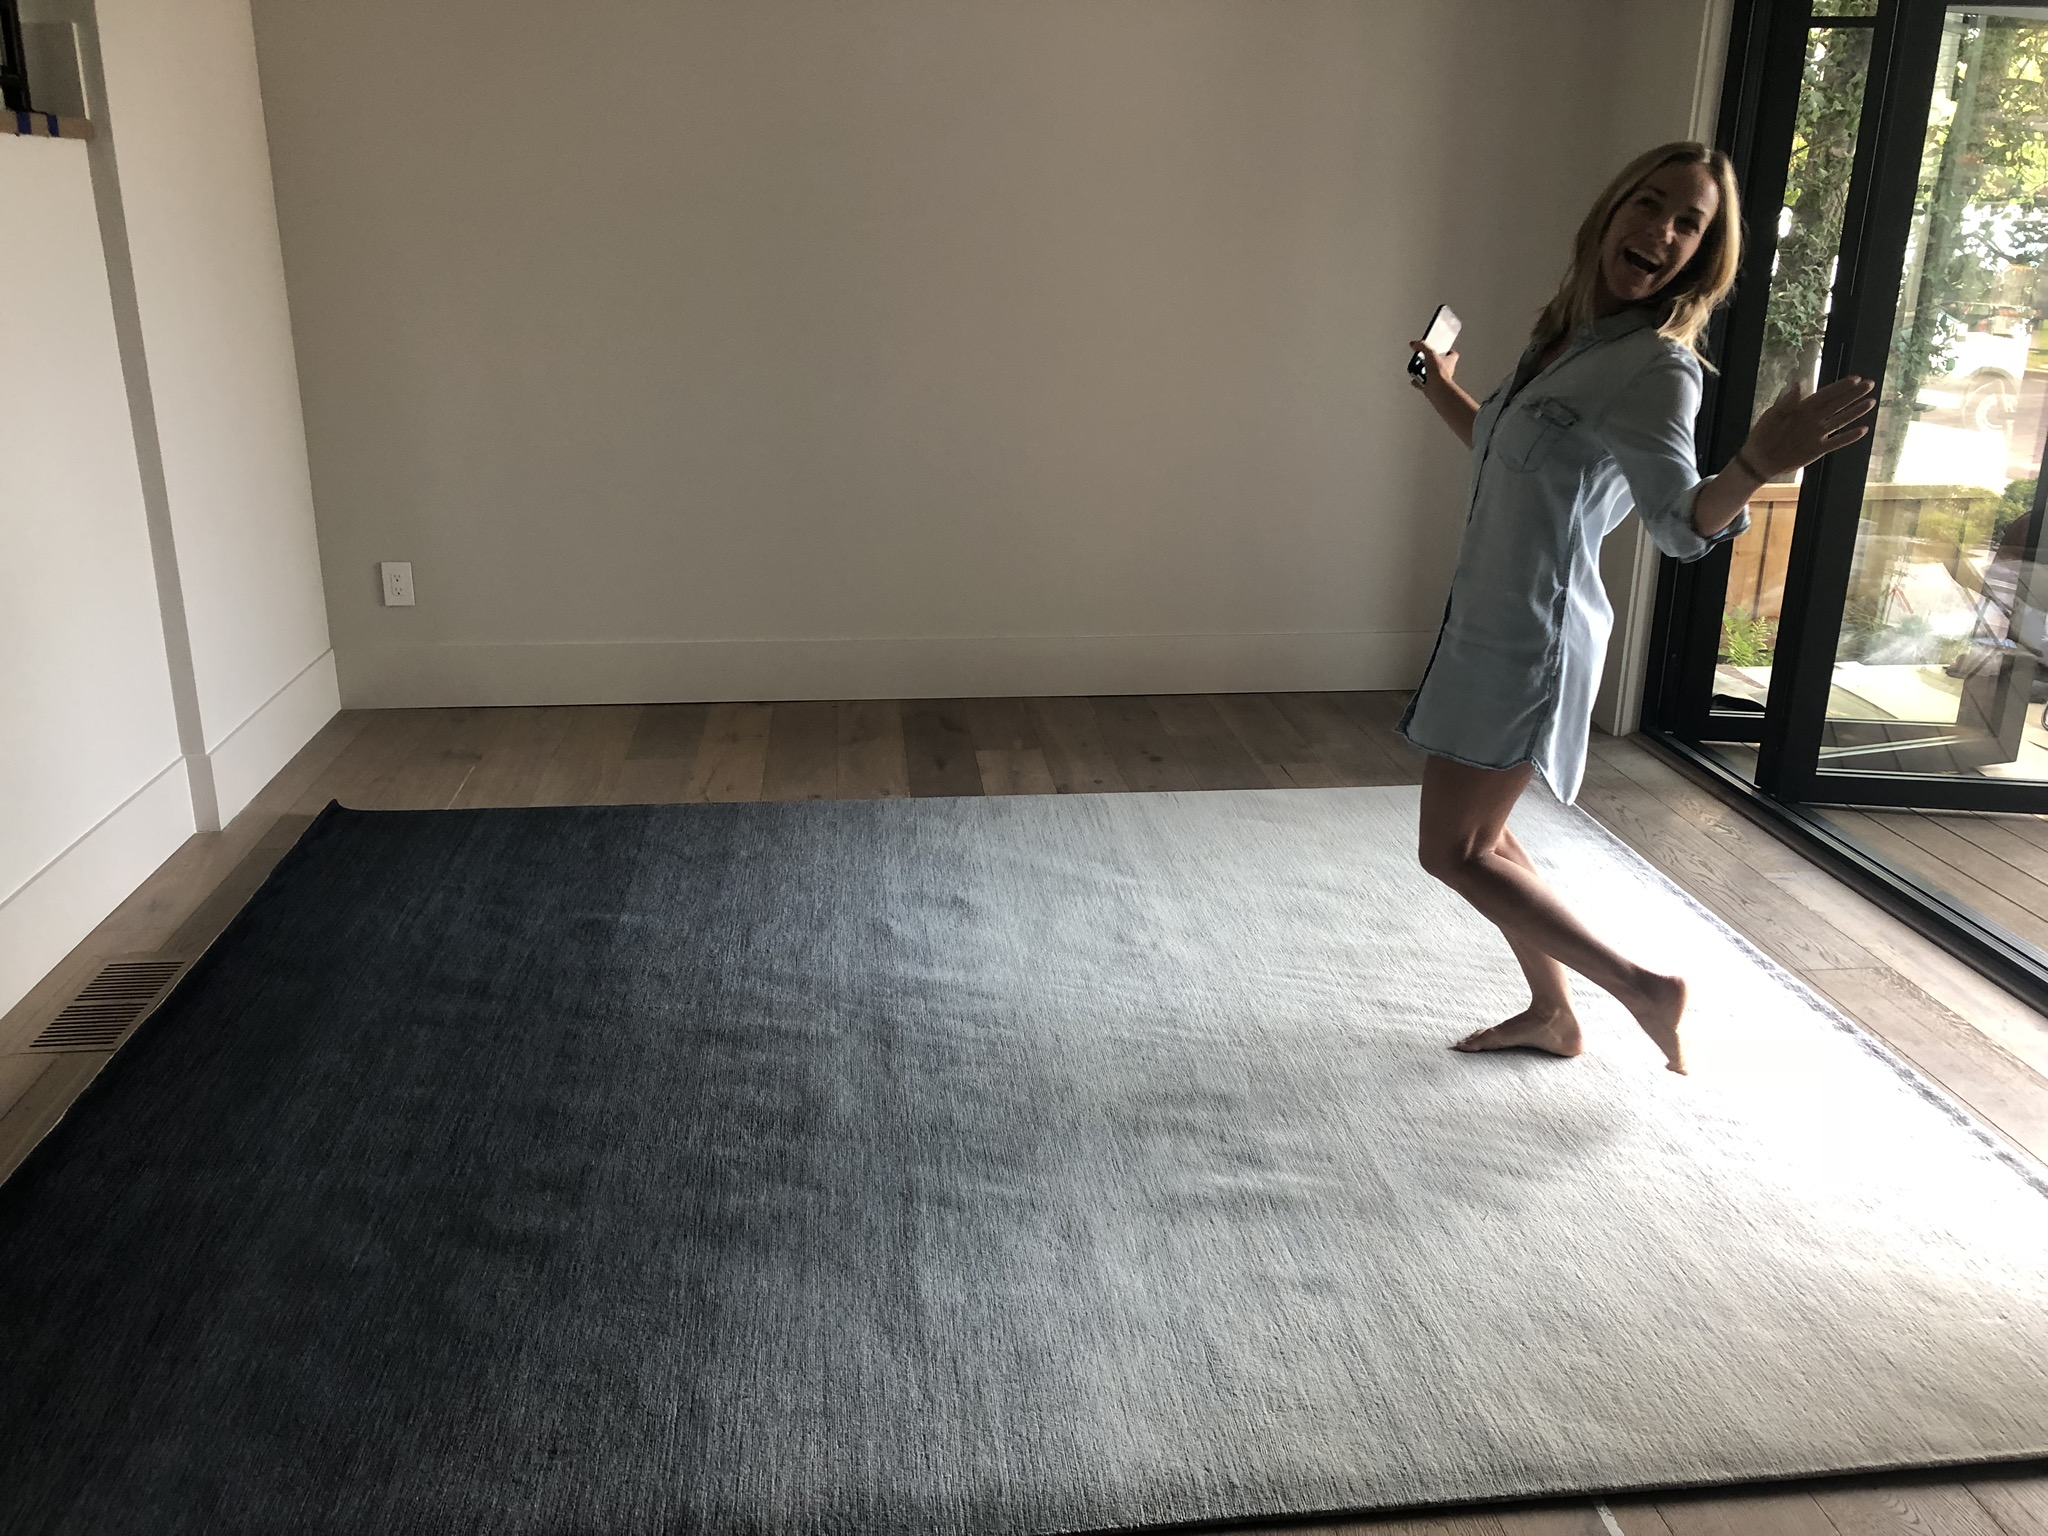 Rugs are exciting business!